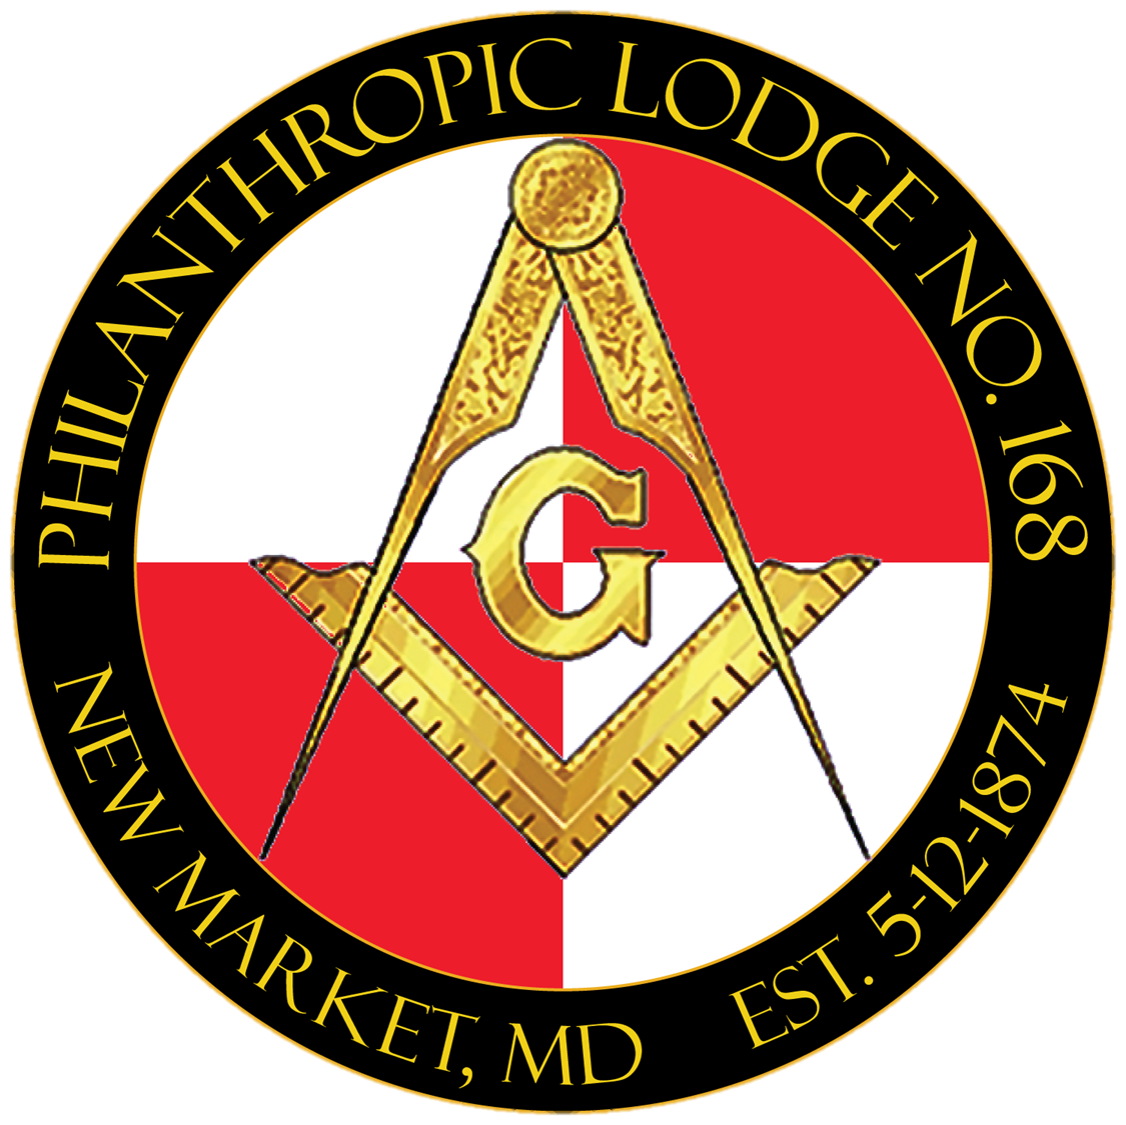 Masonic sun clipart picture freeuse library About Us – Philanthropic Lodge 168 picture freeuse library